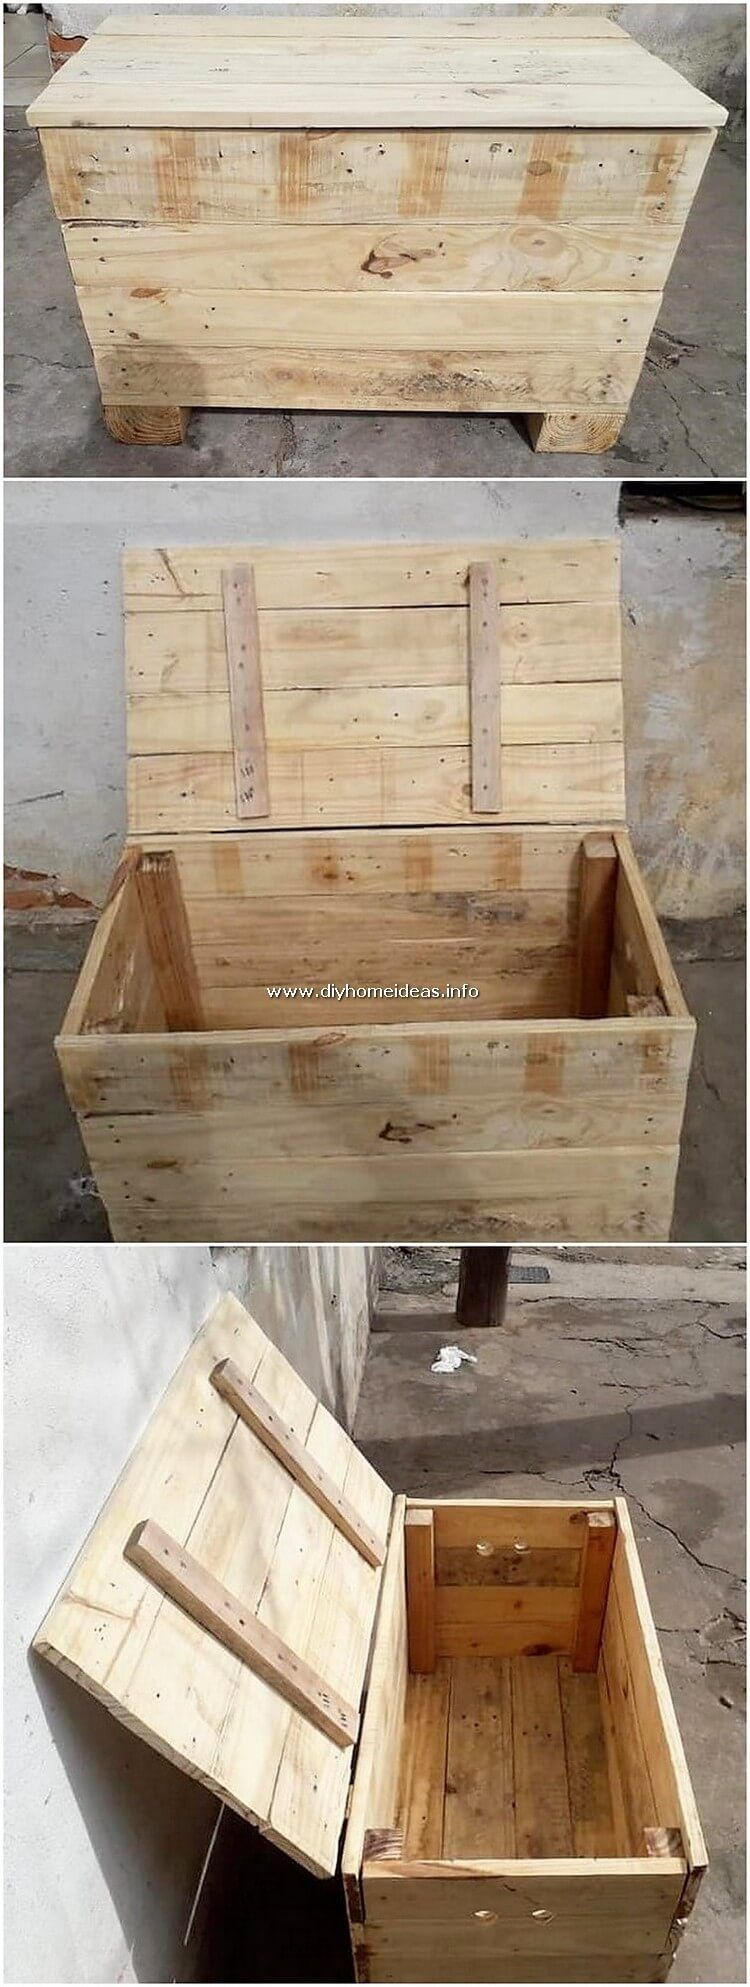 This Wood Pallet Storage Box Set With Wooden Work Flavor Is Fantastically Designed With The Involvement Of Stockage De Palette Palette Diy Creation En Palettes